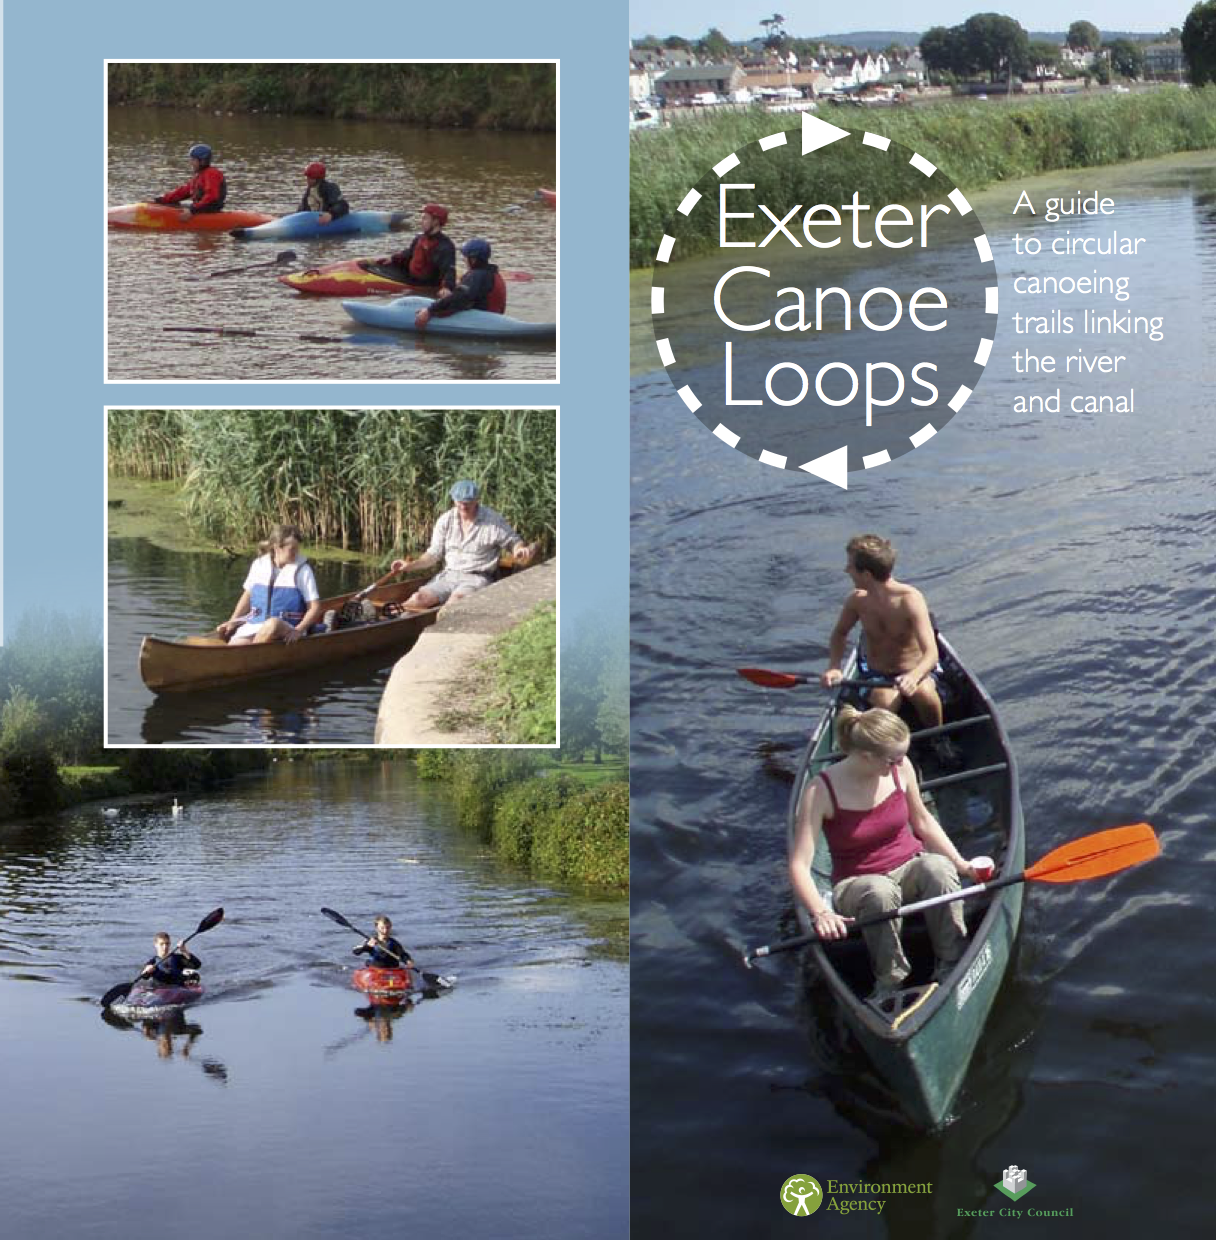 Our guide to getting the most out of kayaking   canoeing on the River Exe. 36e93064bbf